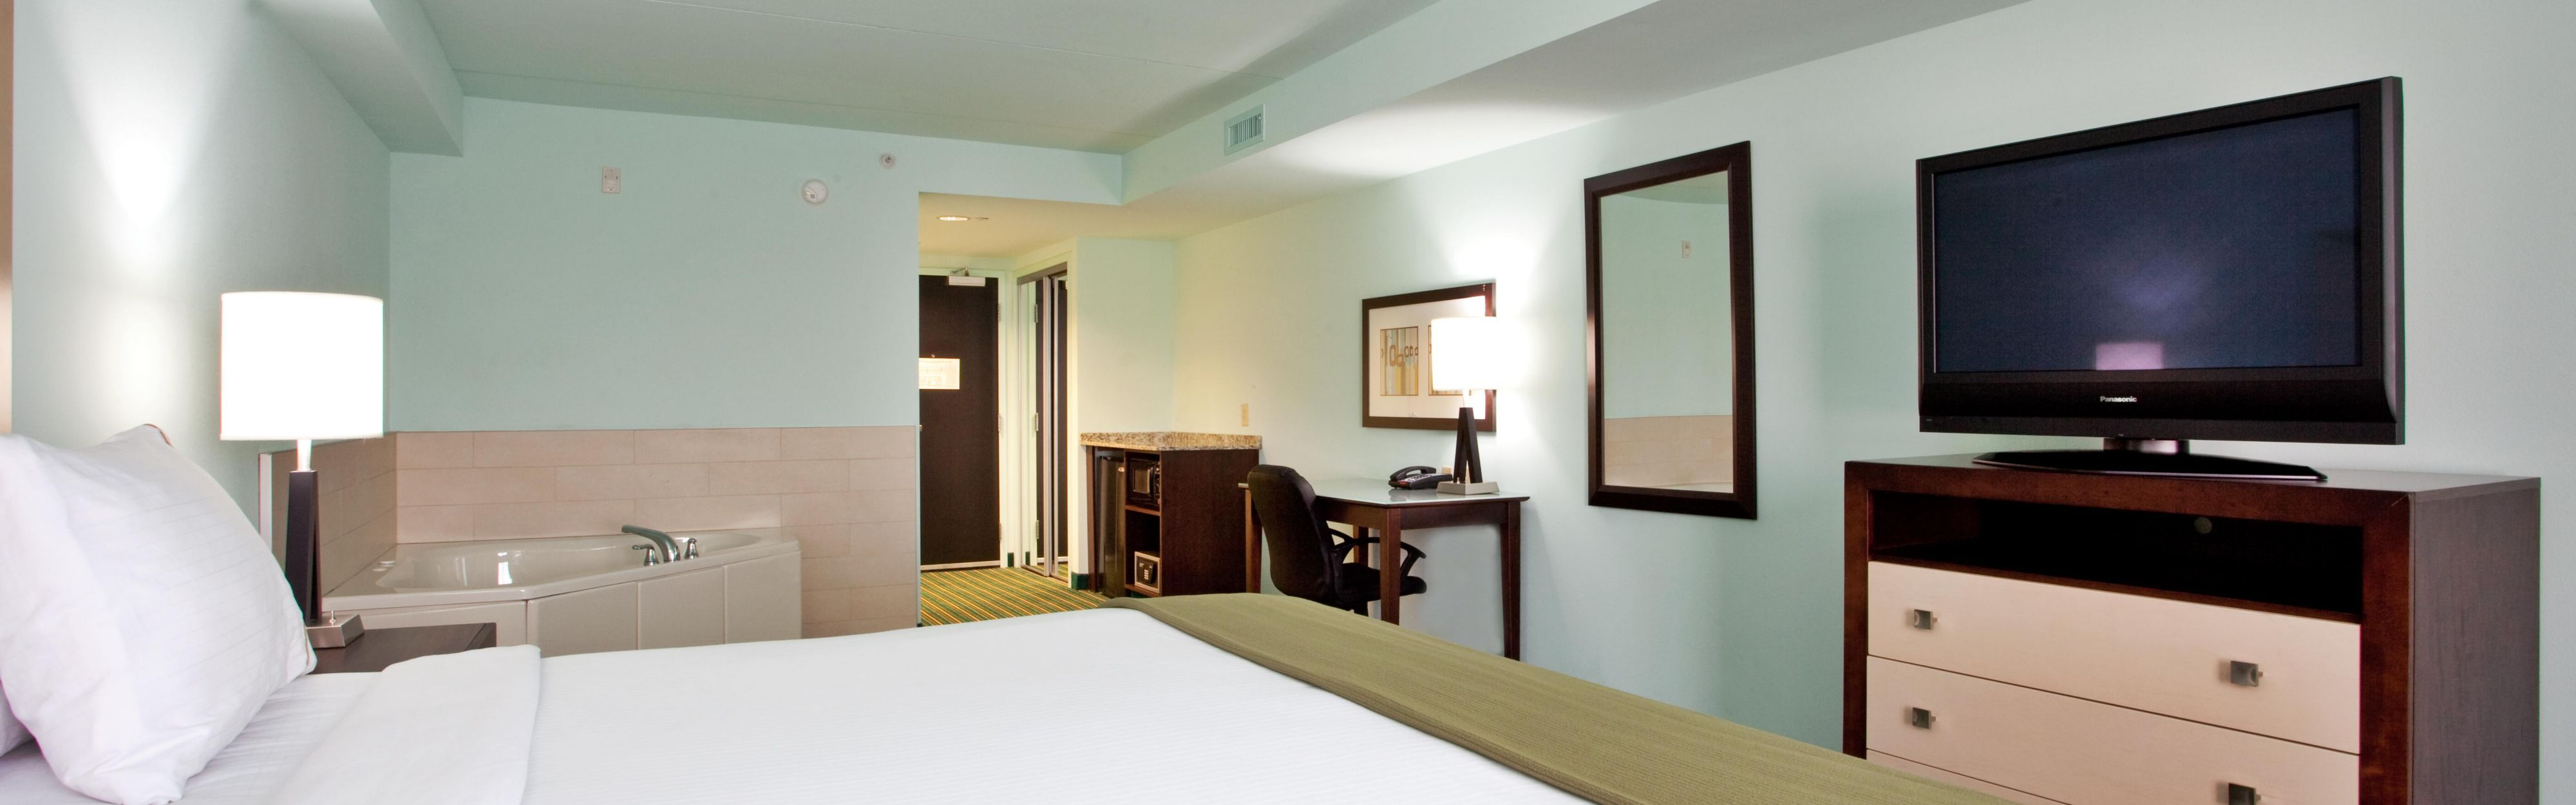 Holiday Inn Express & Suites Norfolk Airport image 1